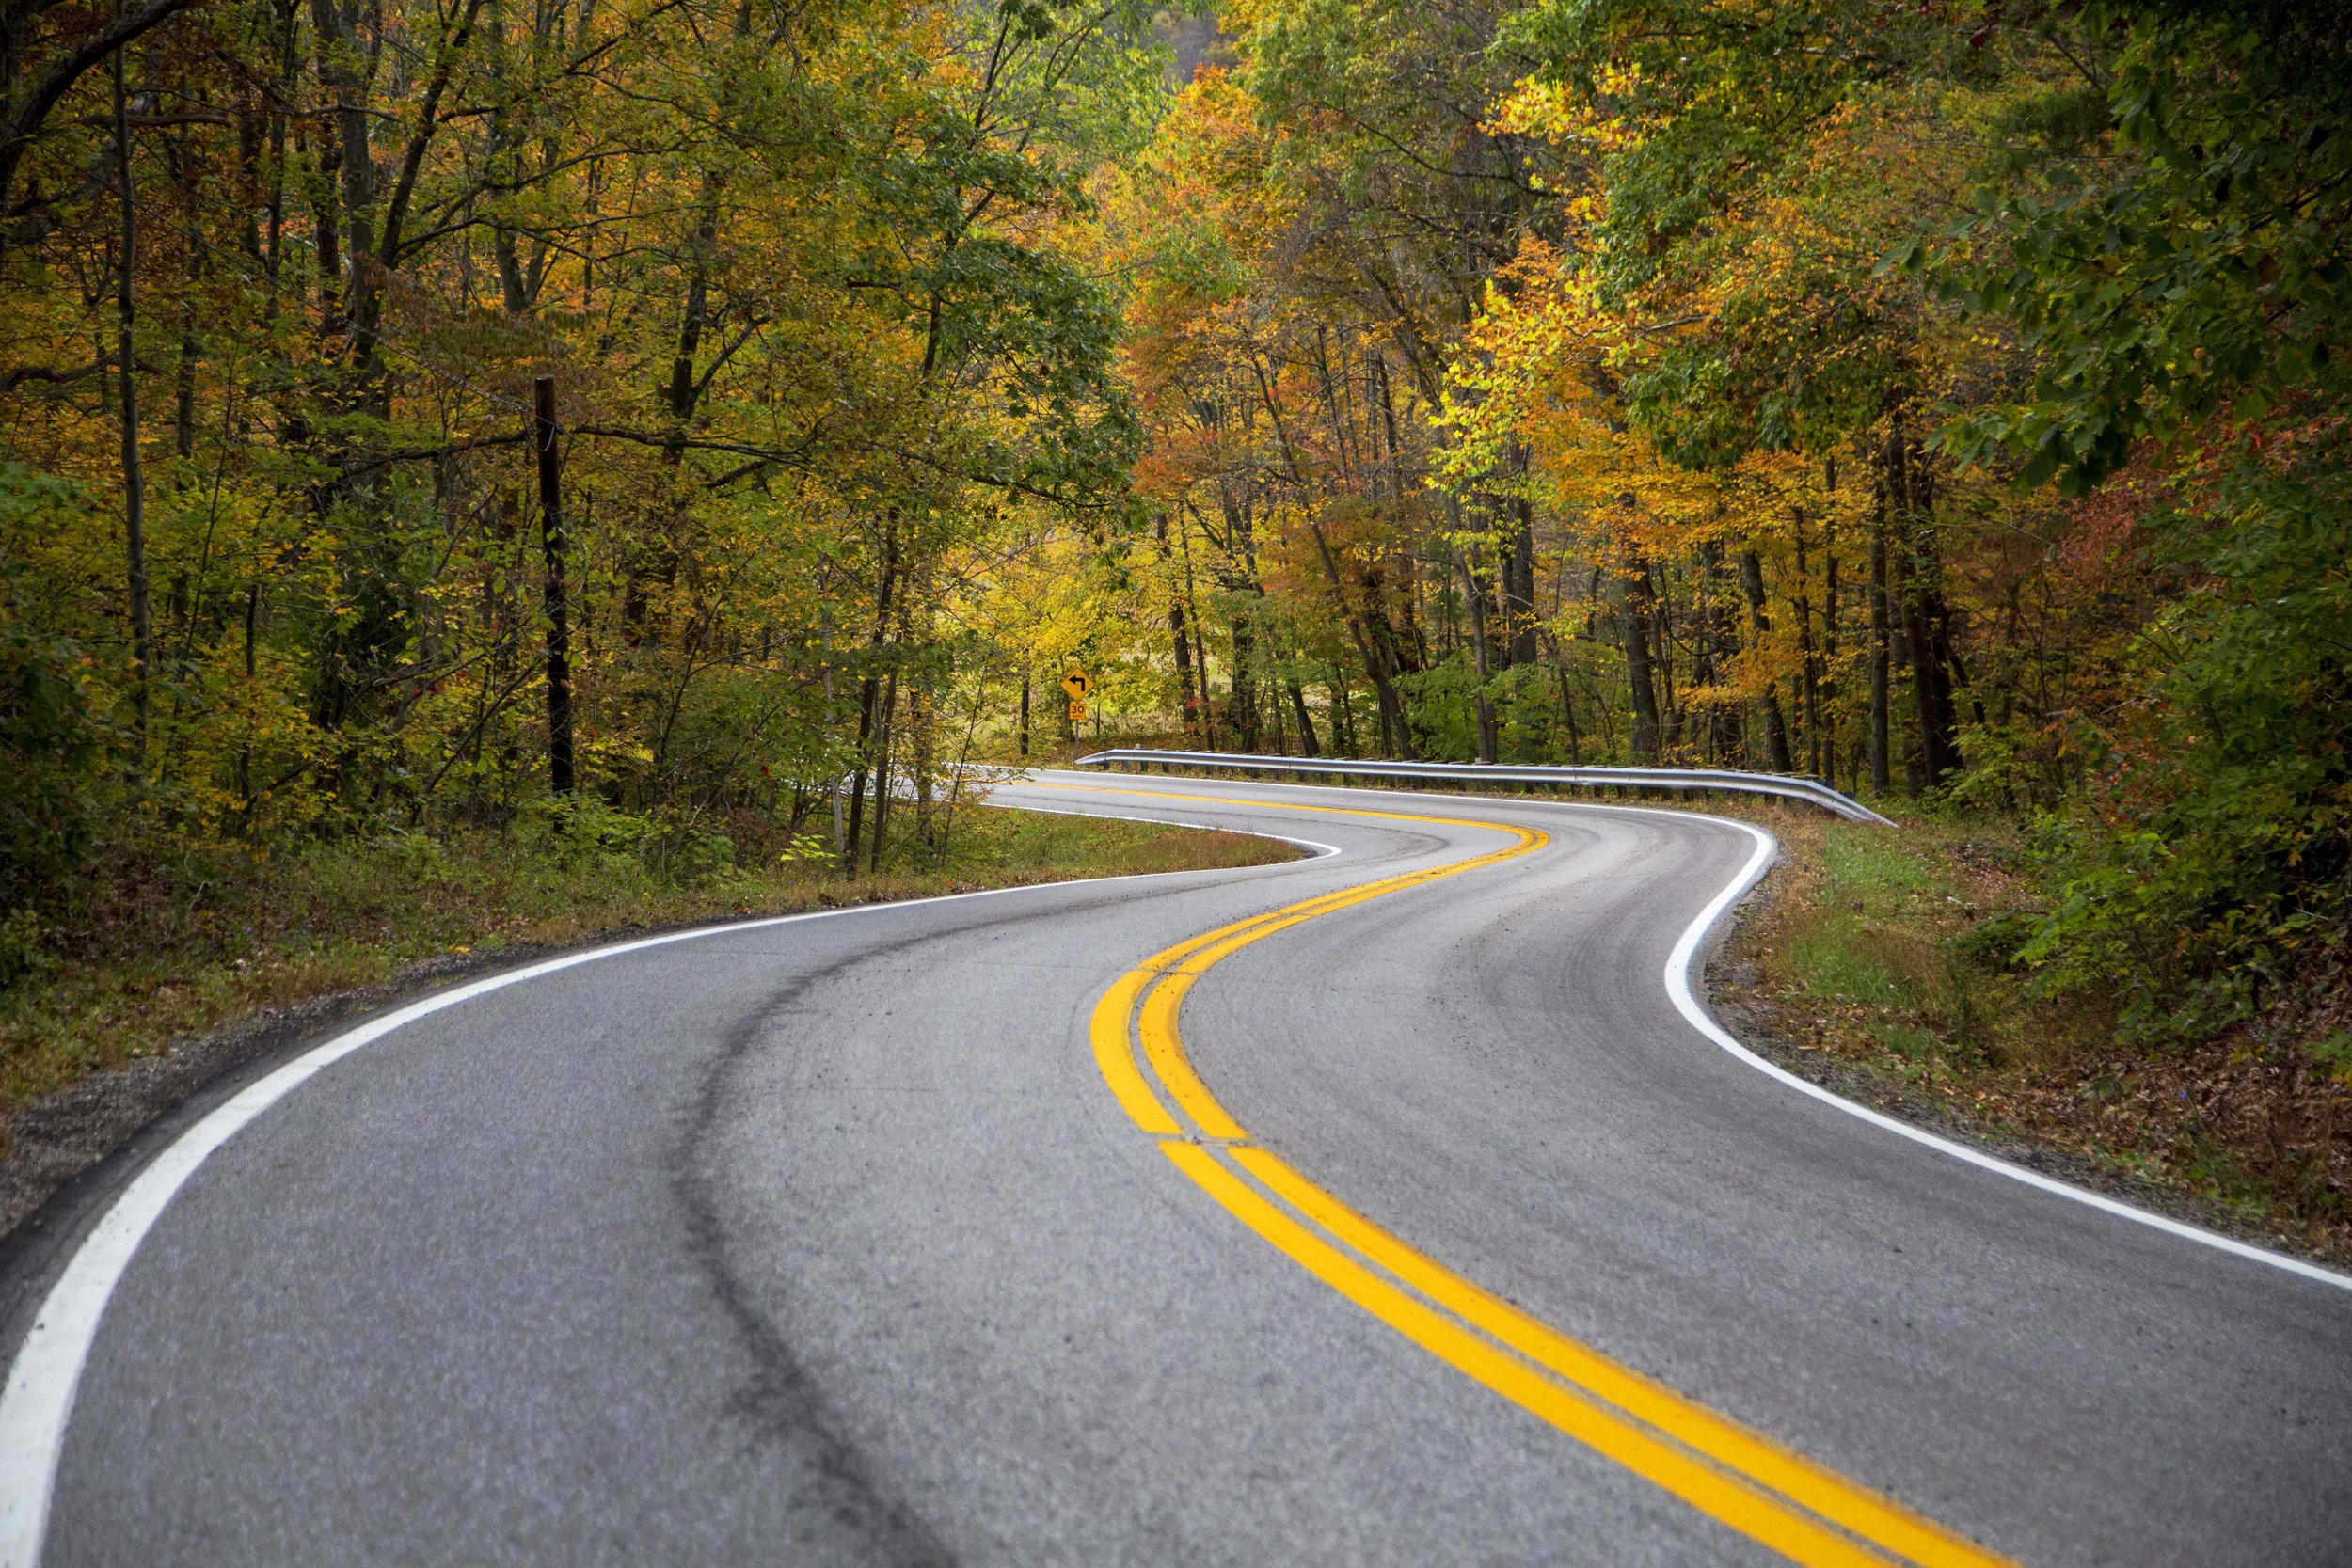 Todd_Sechel_Oct172015_2349 HH_Scenic_Byway.jpg